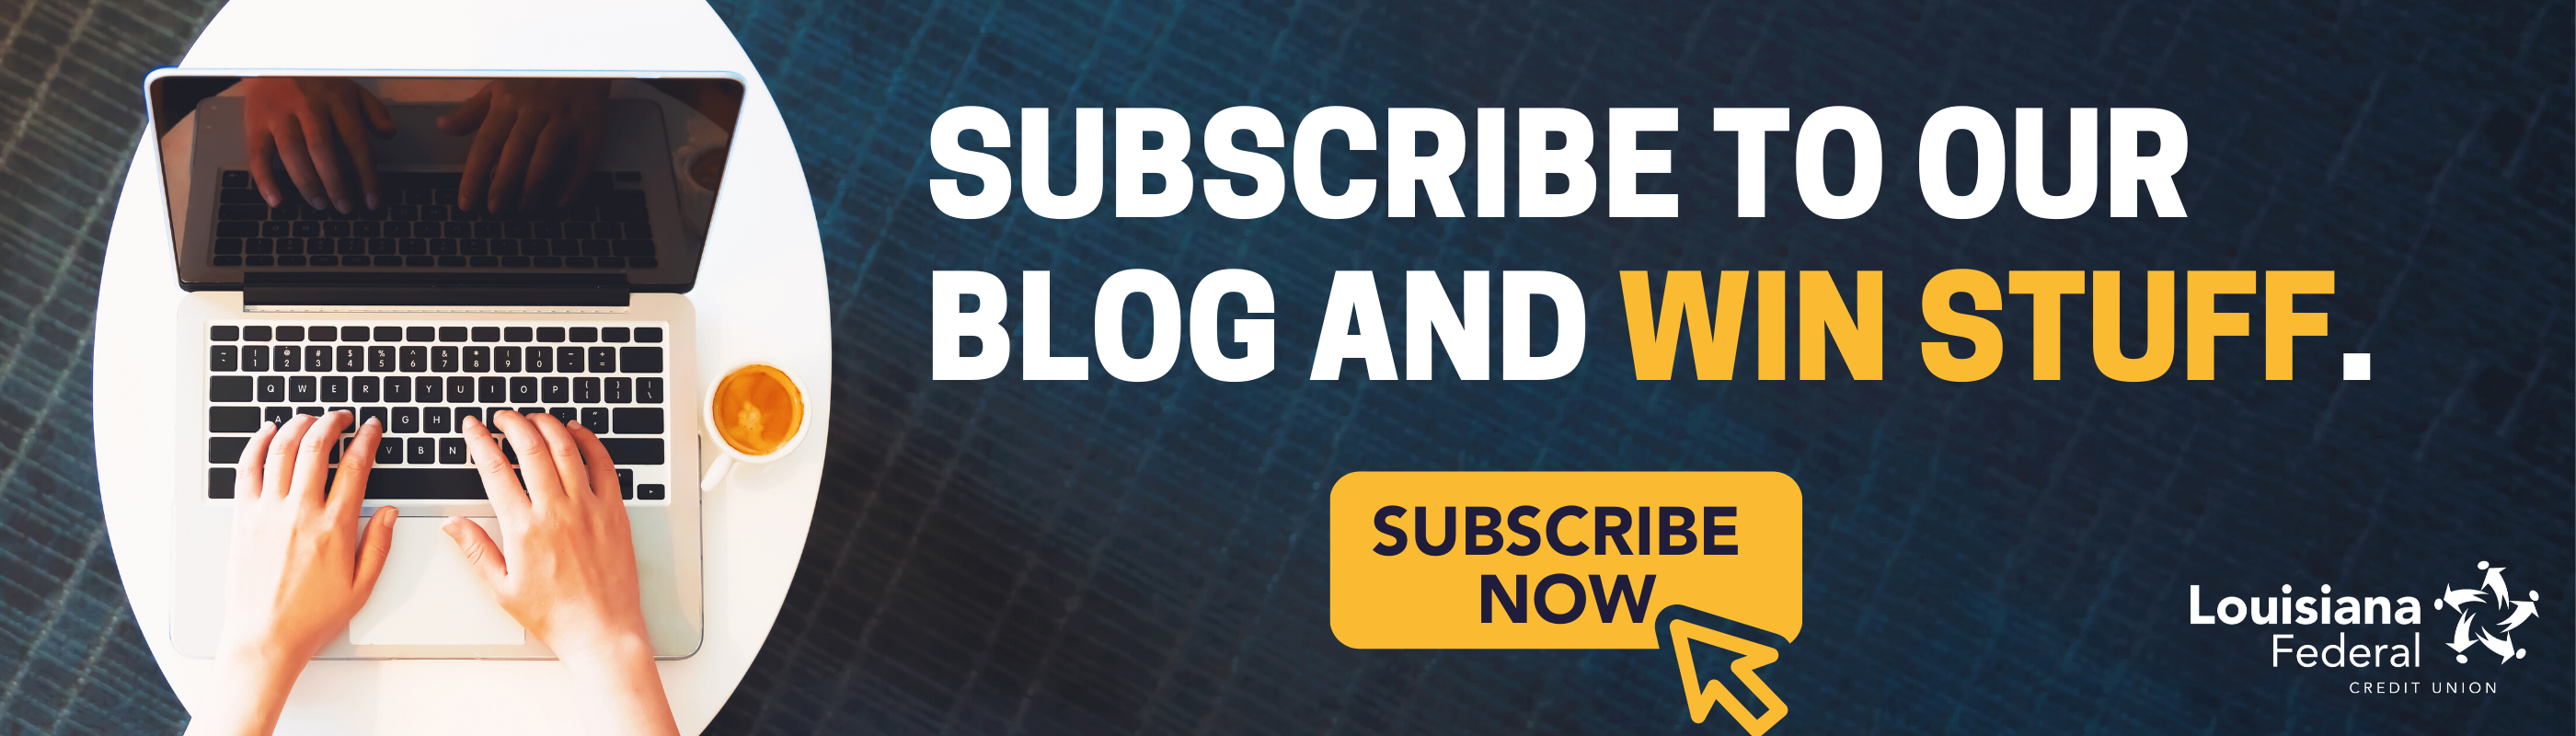 Subscribe to our blog today and enter for a chance to earn a prize